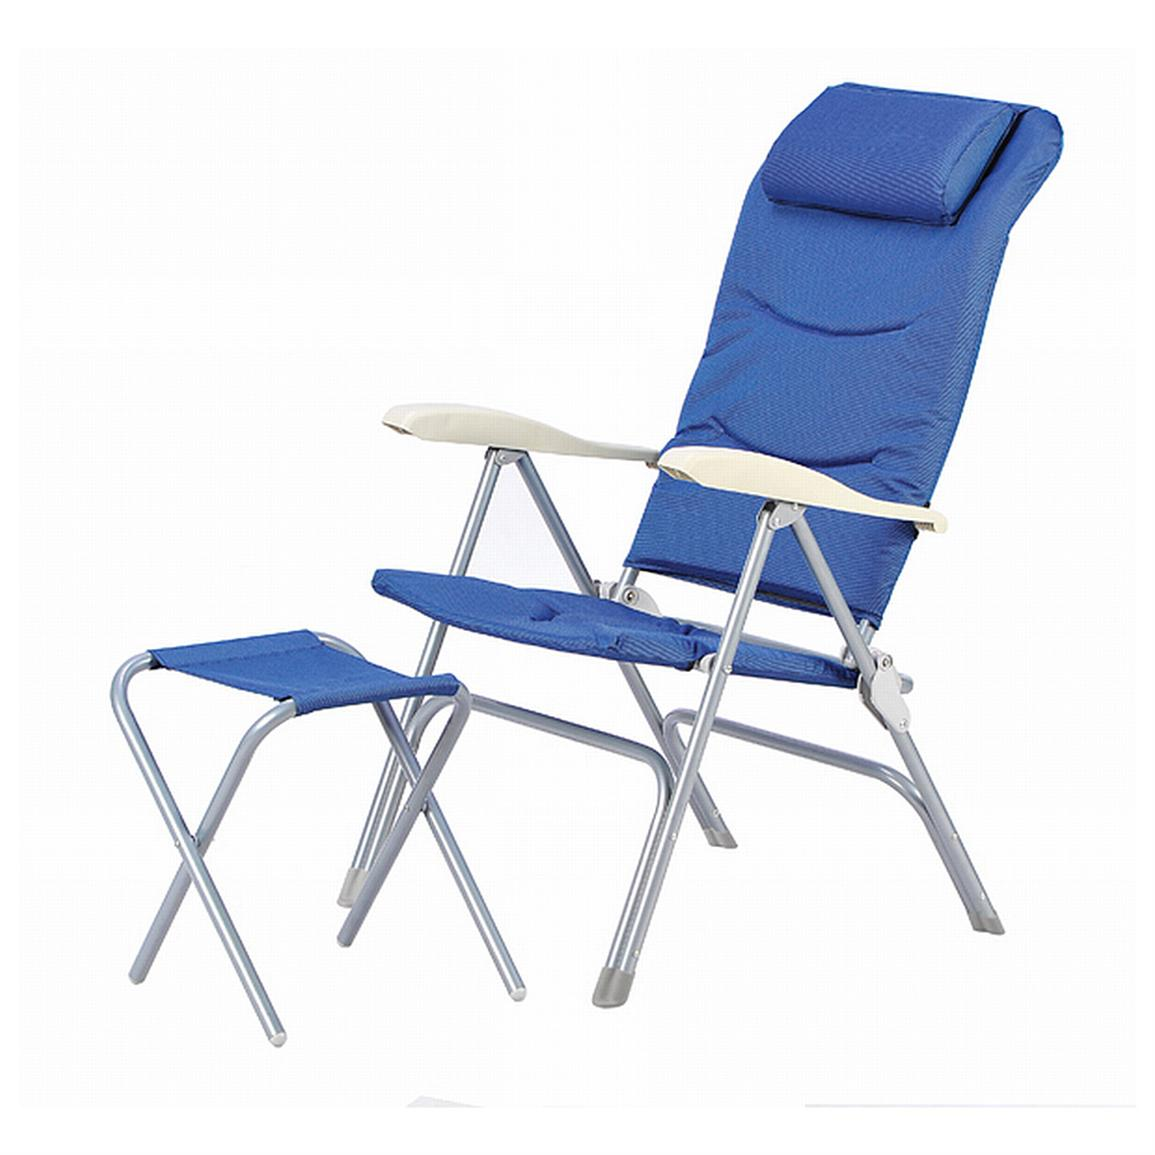 Camping Chair With Footrest Captain 39s Chair With Footrest 425498 Chairs At